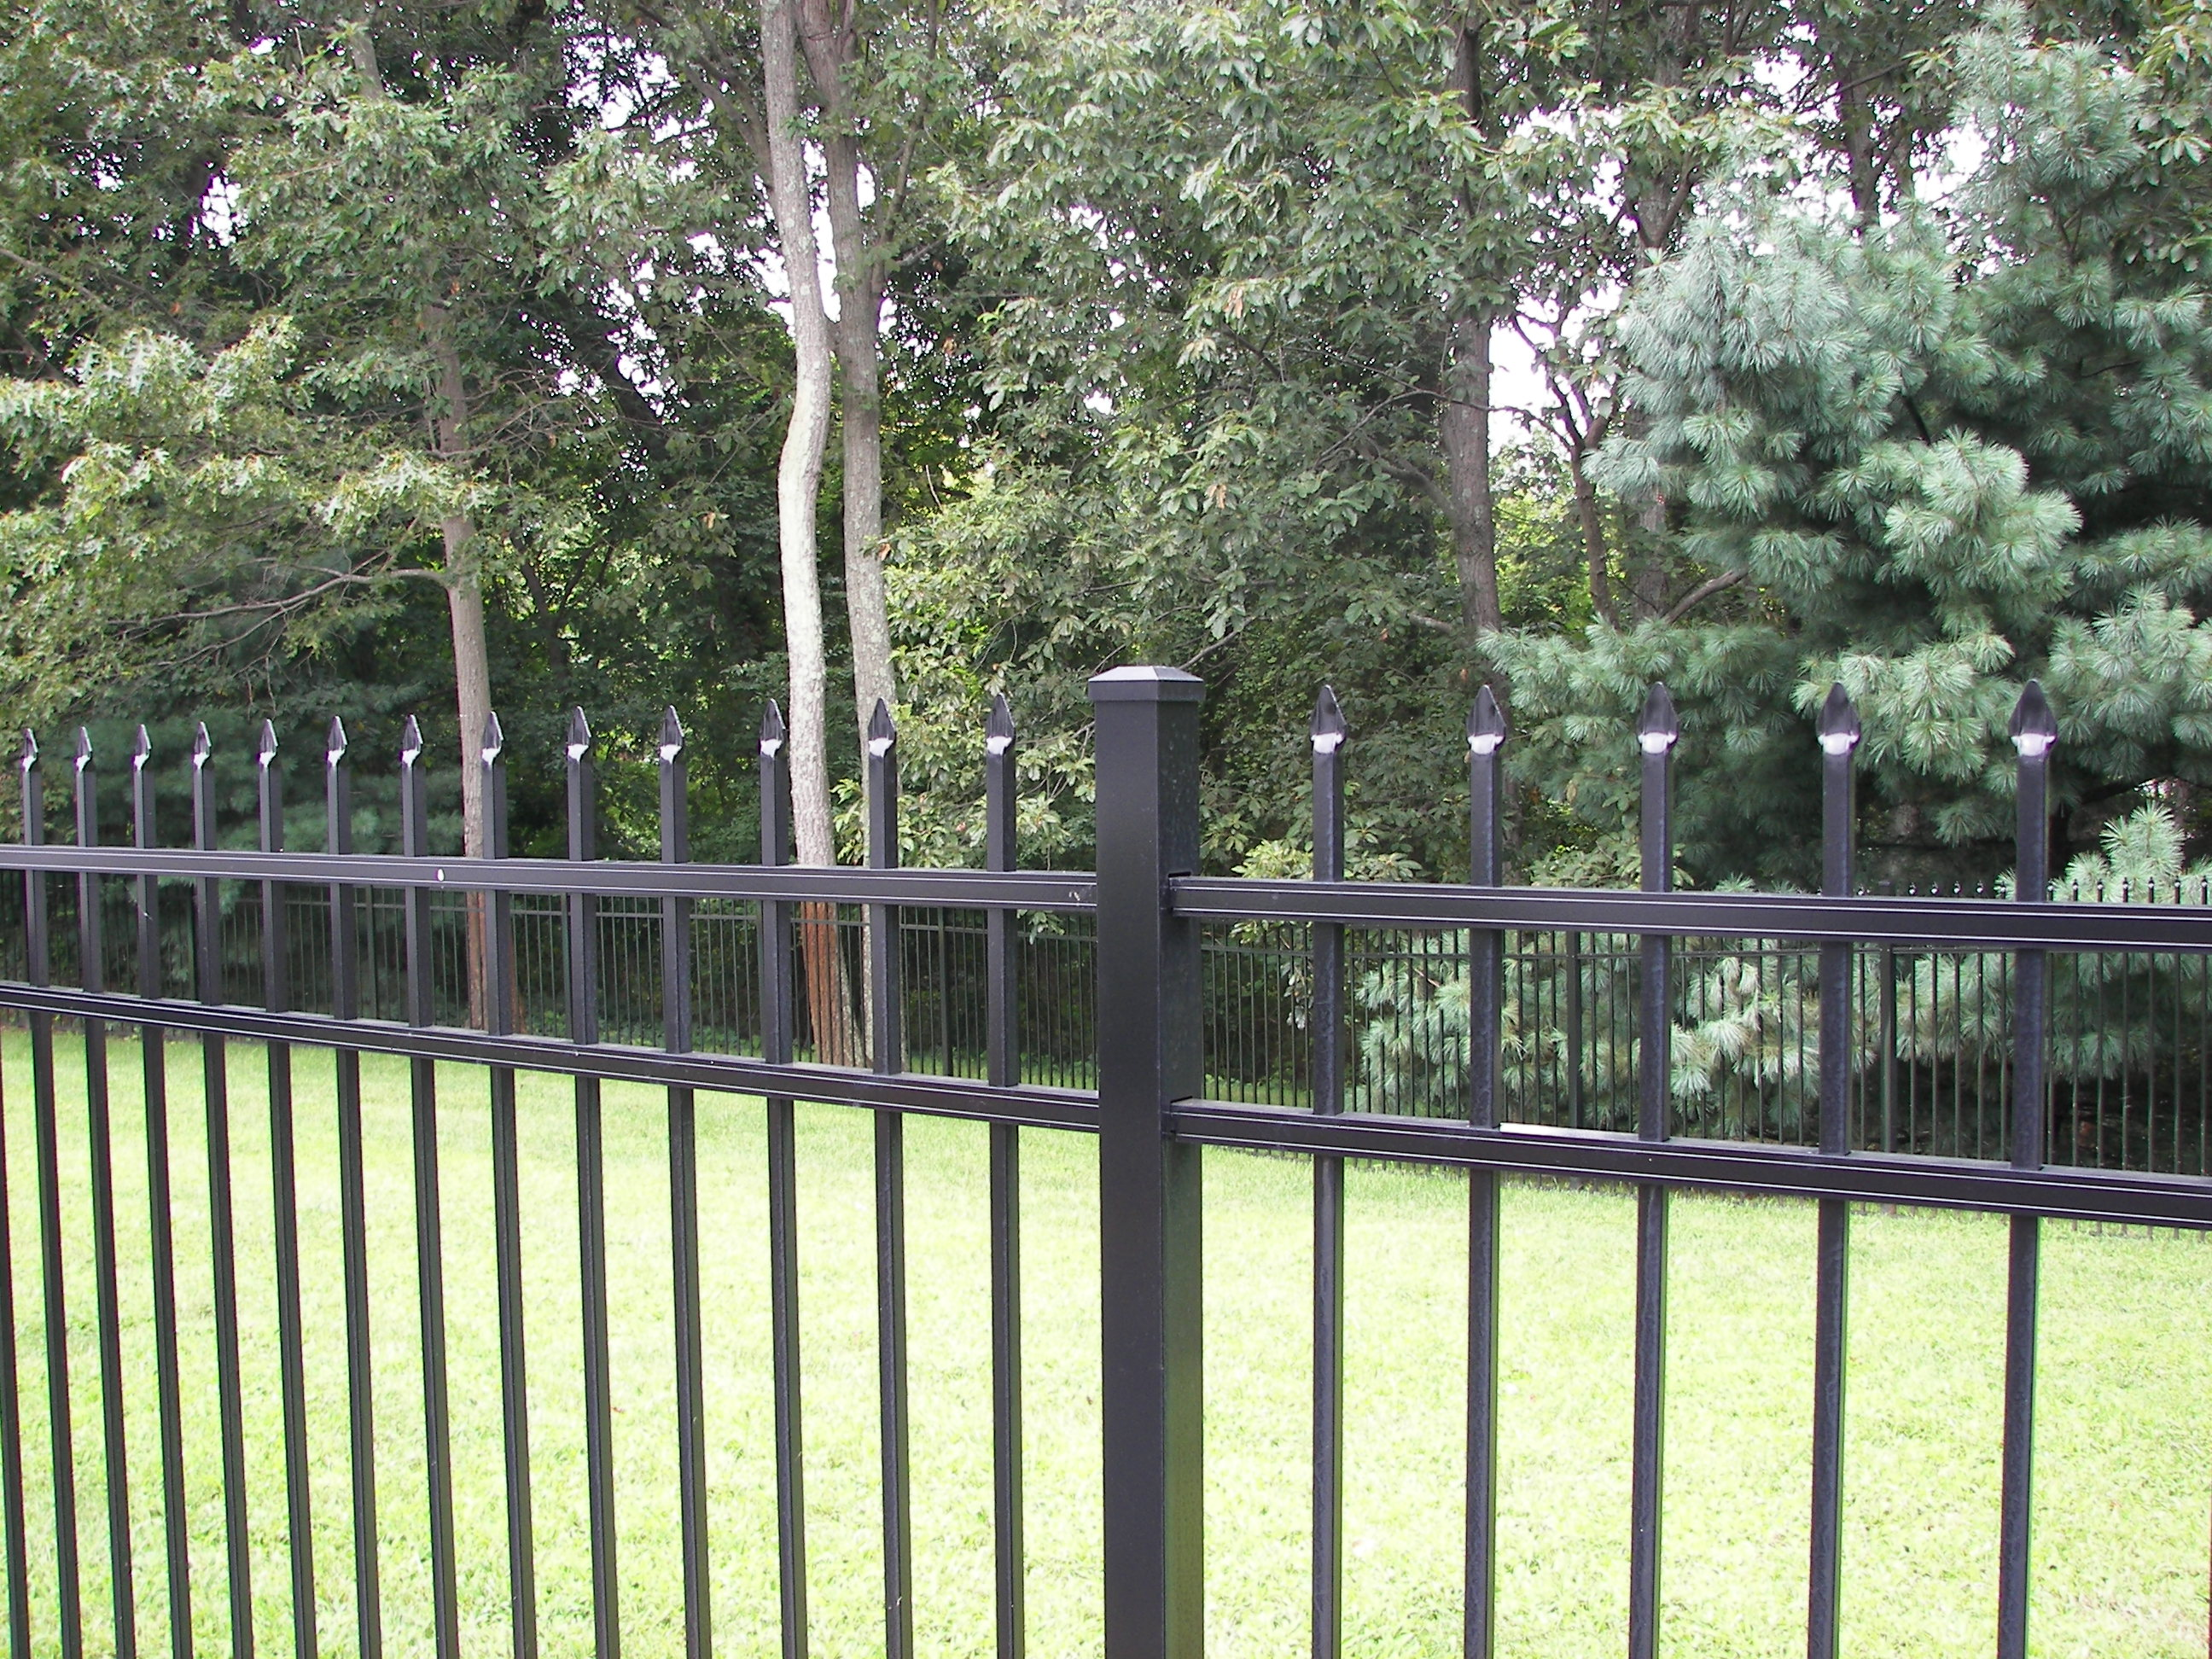 Aluminium Fence Panels : Specrail residential aluminum fence panels and gates